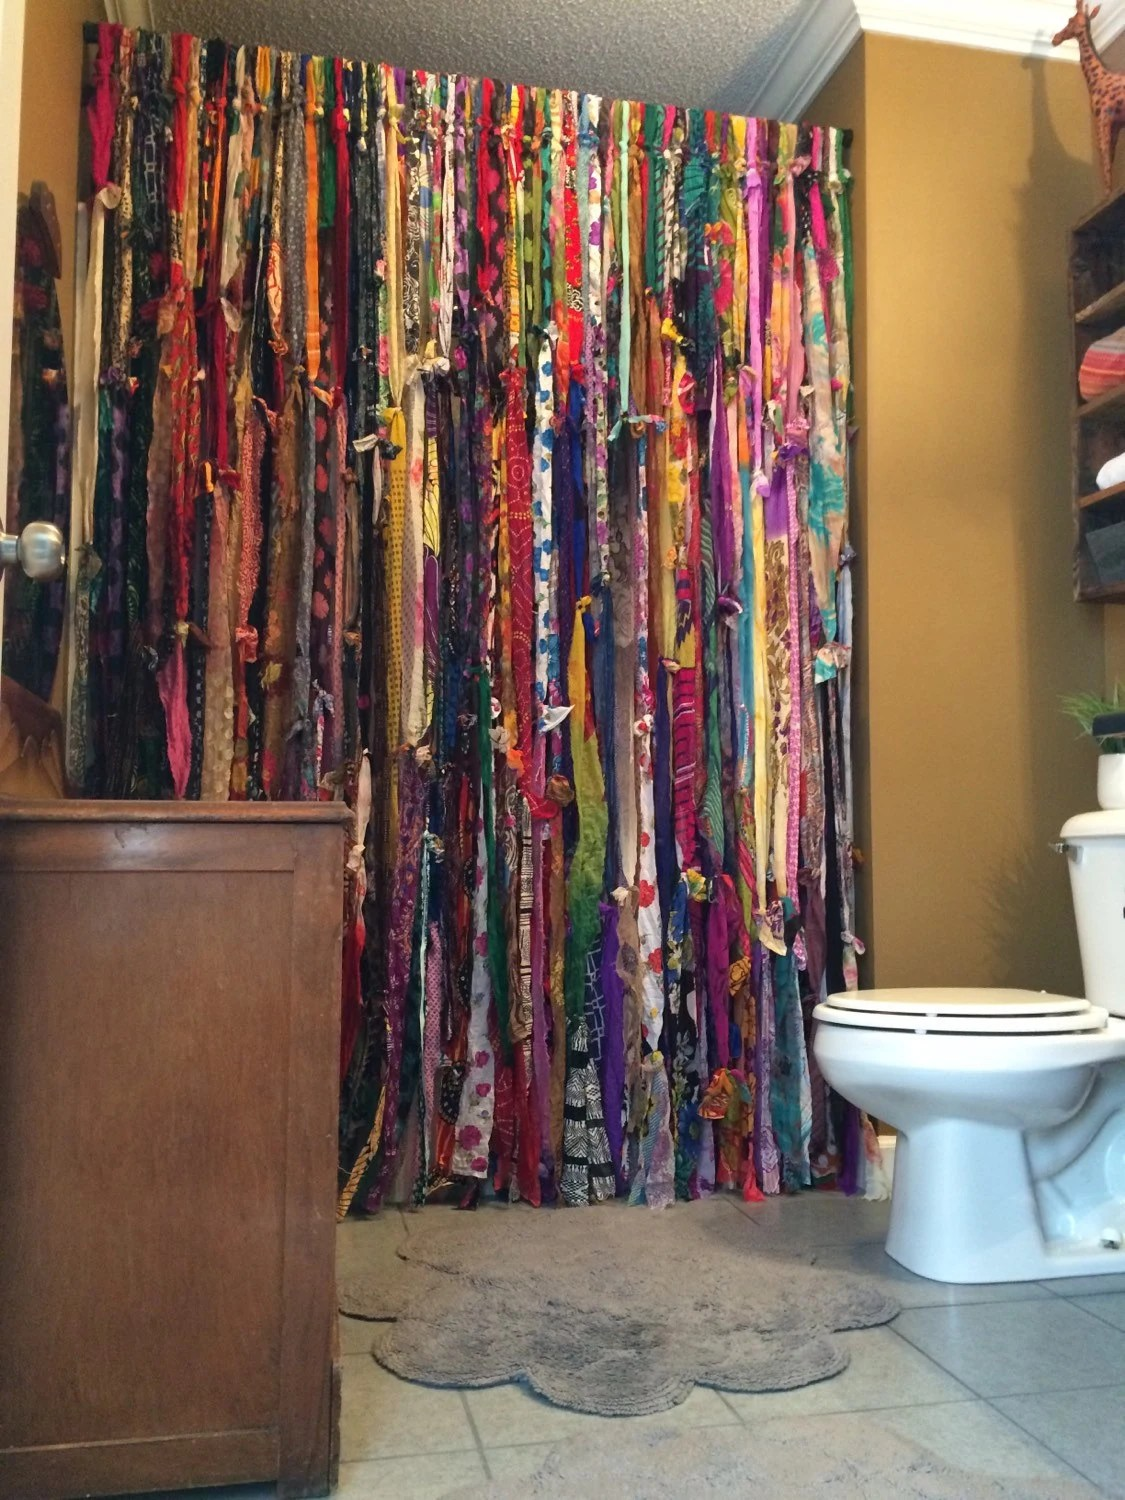 Closet Beads Curtains Handmade Bohemian Bathroom Shower Curtain